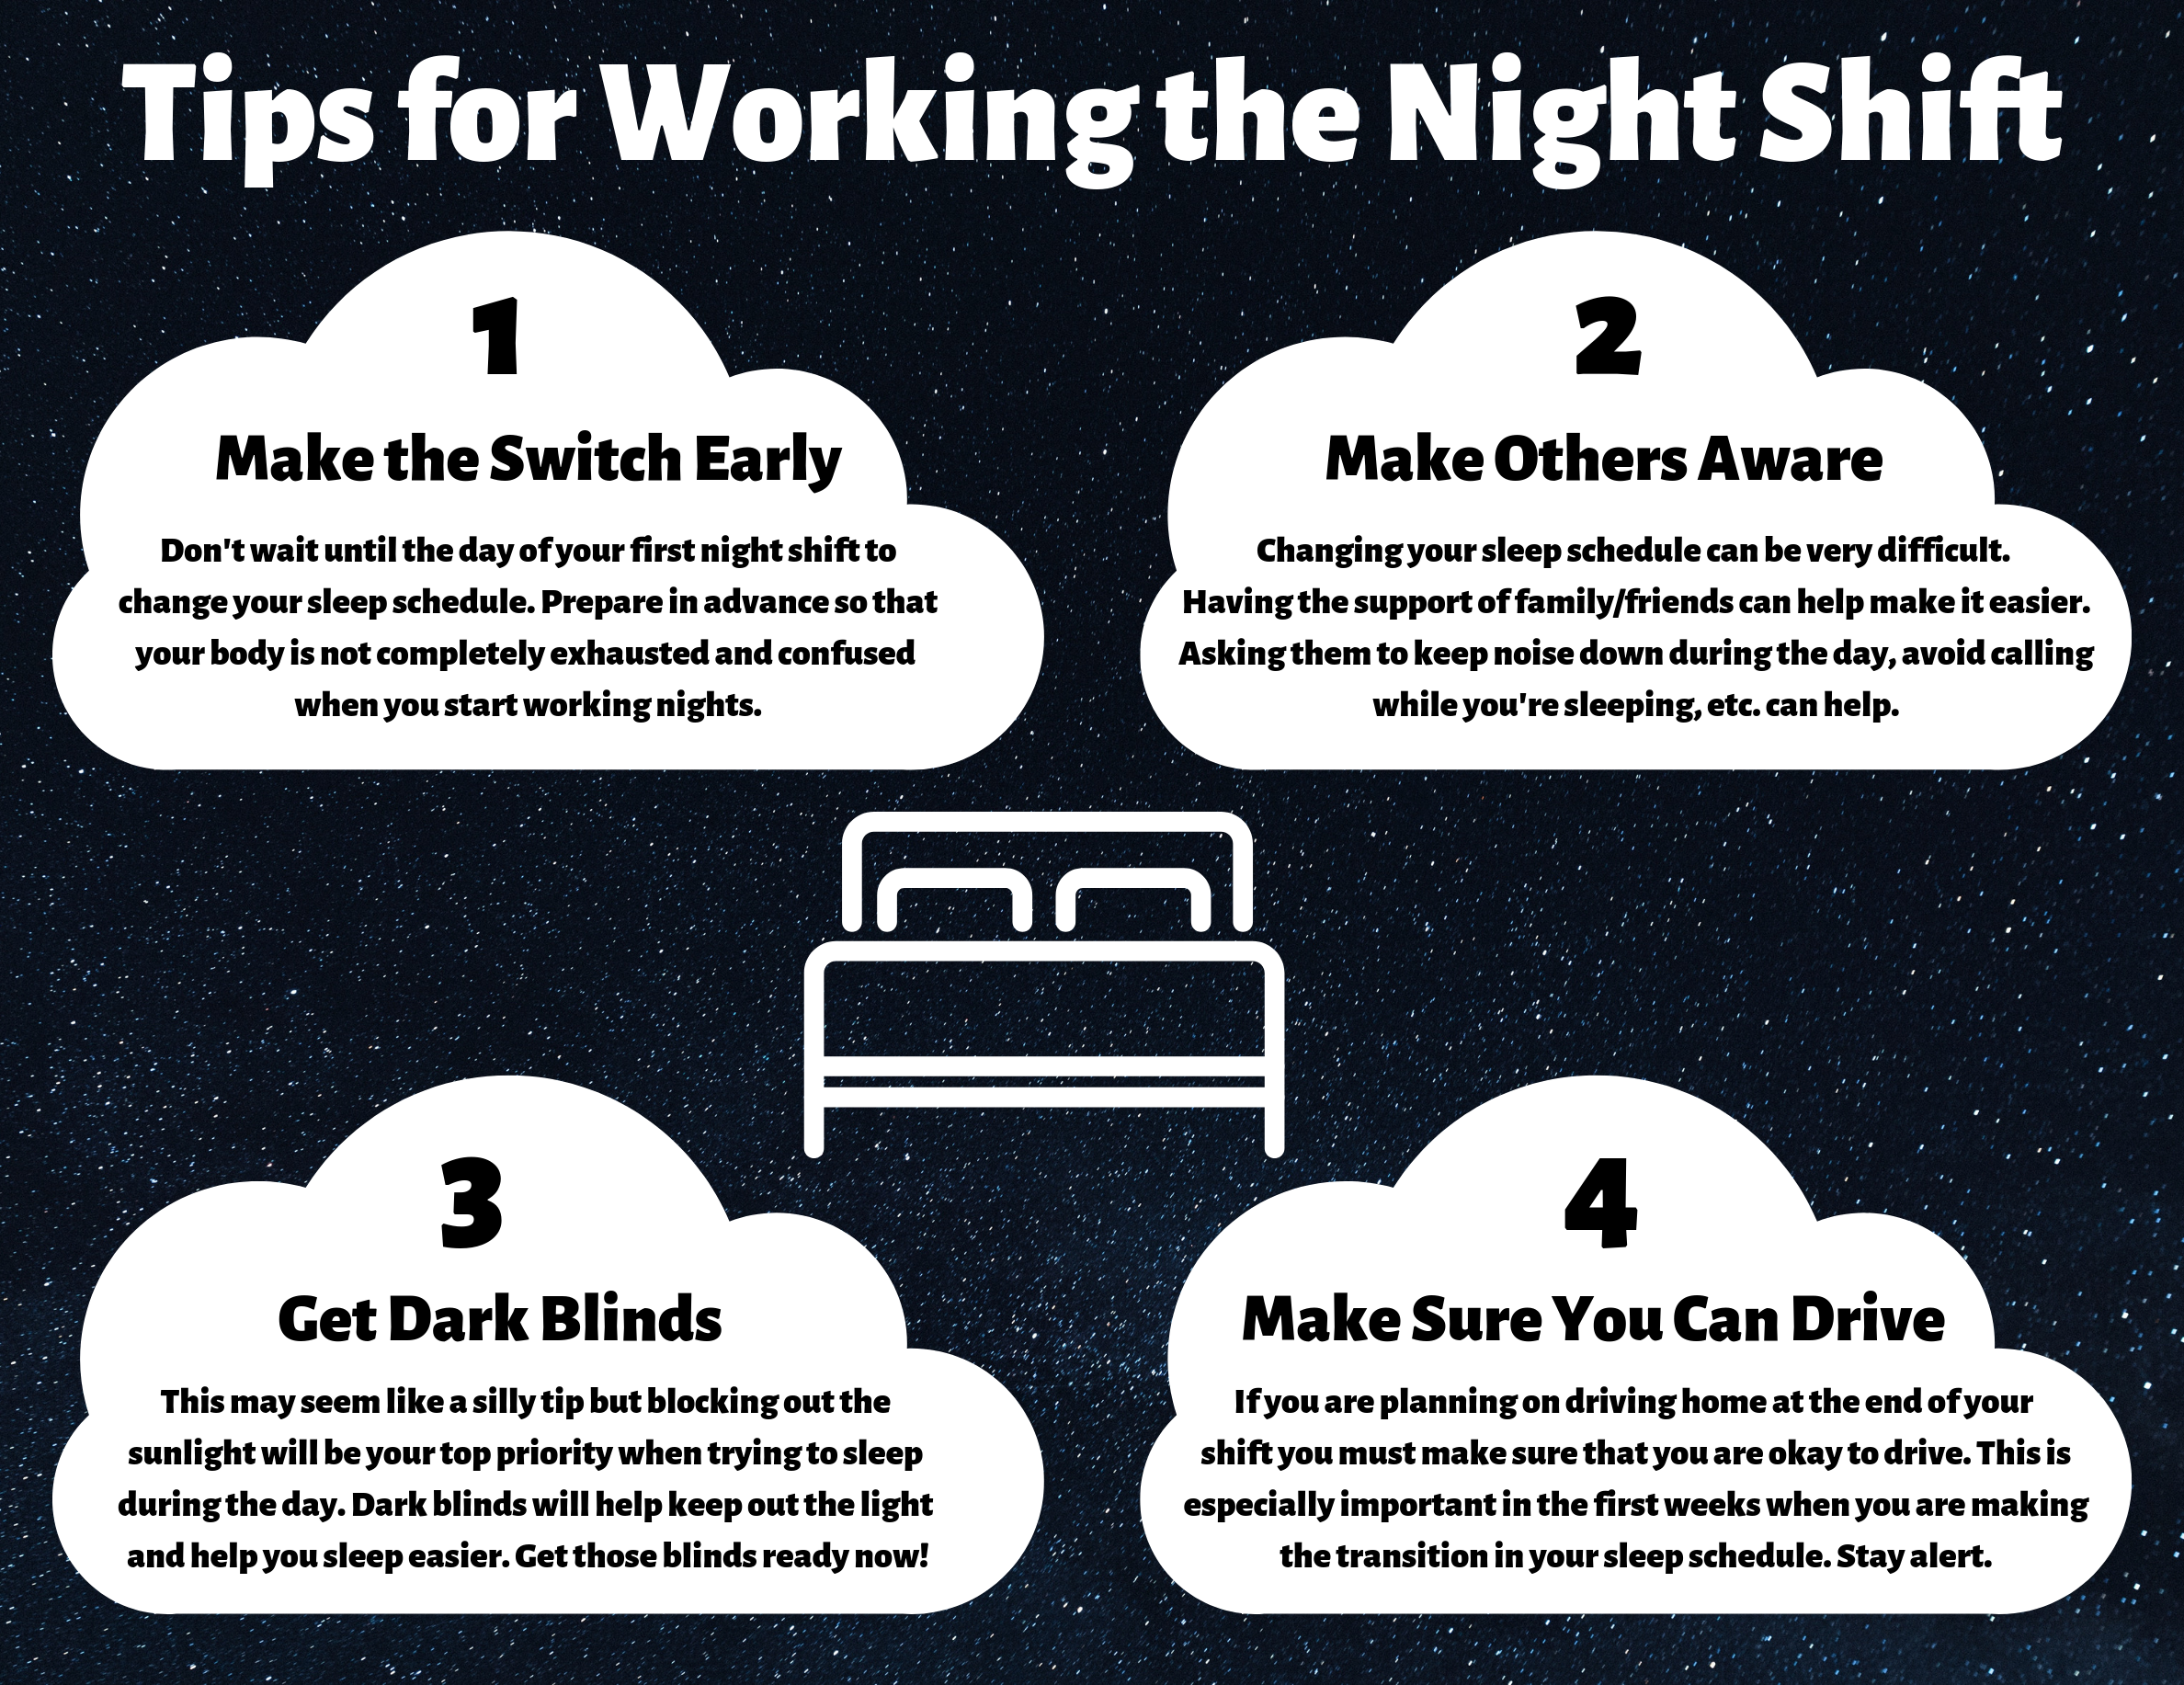 Tips for Working the Night Shift